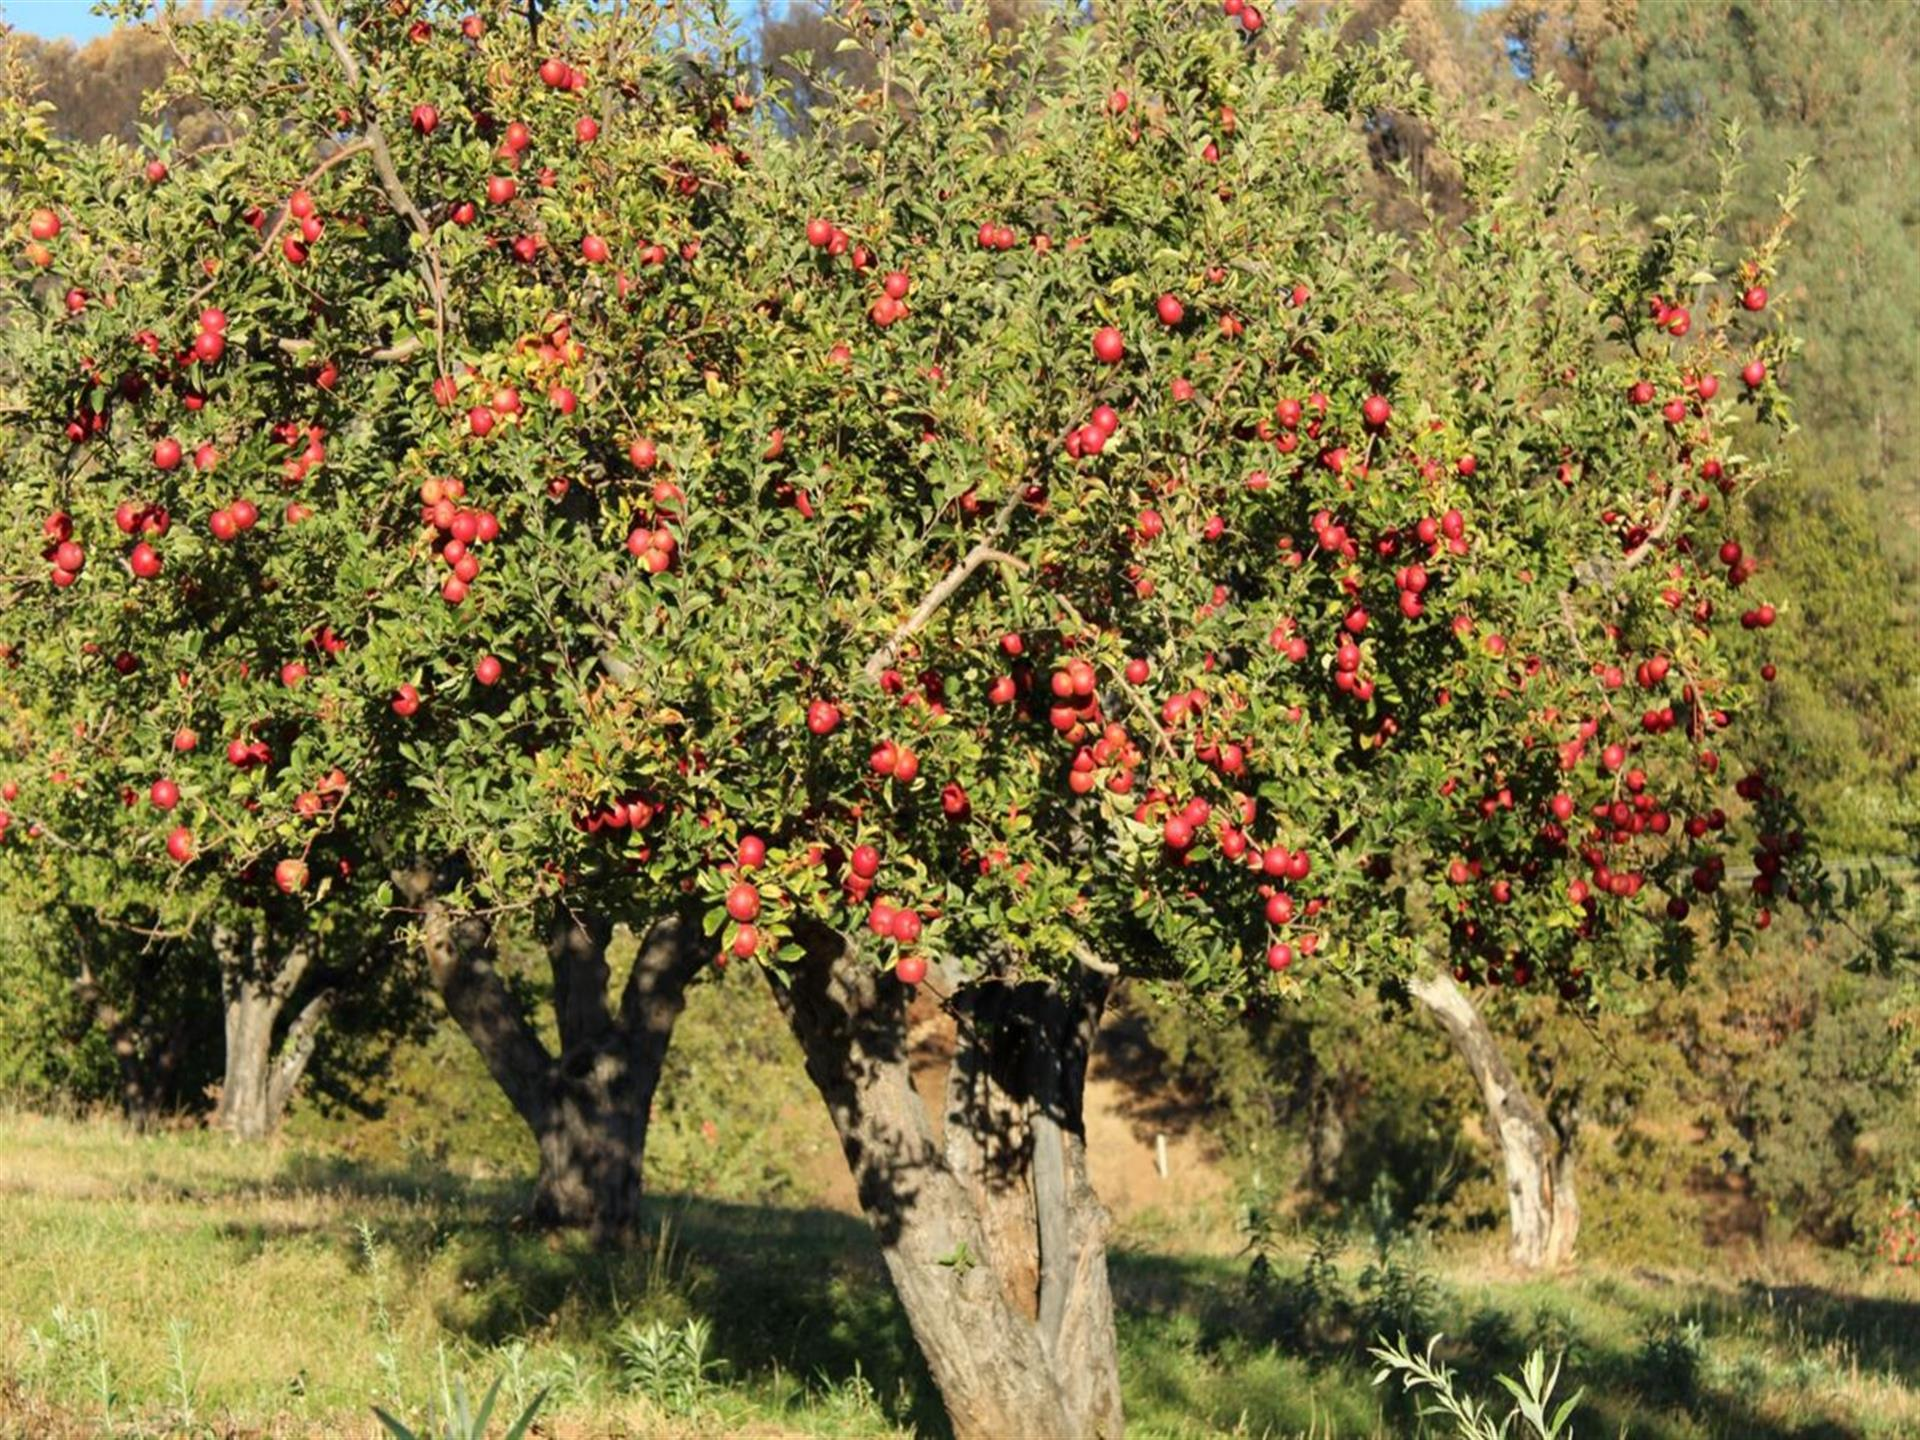 red apples hanging of an apple tree